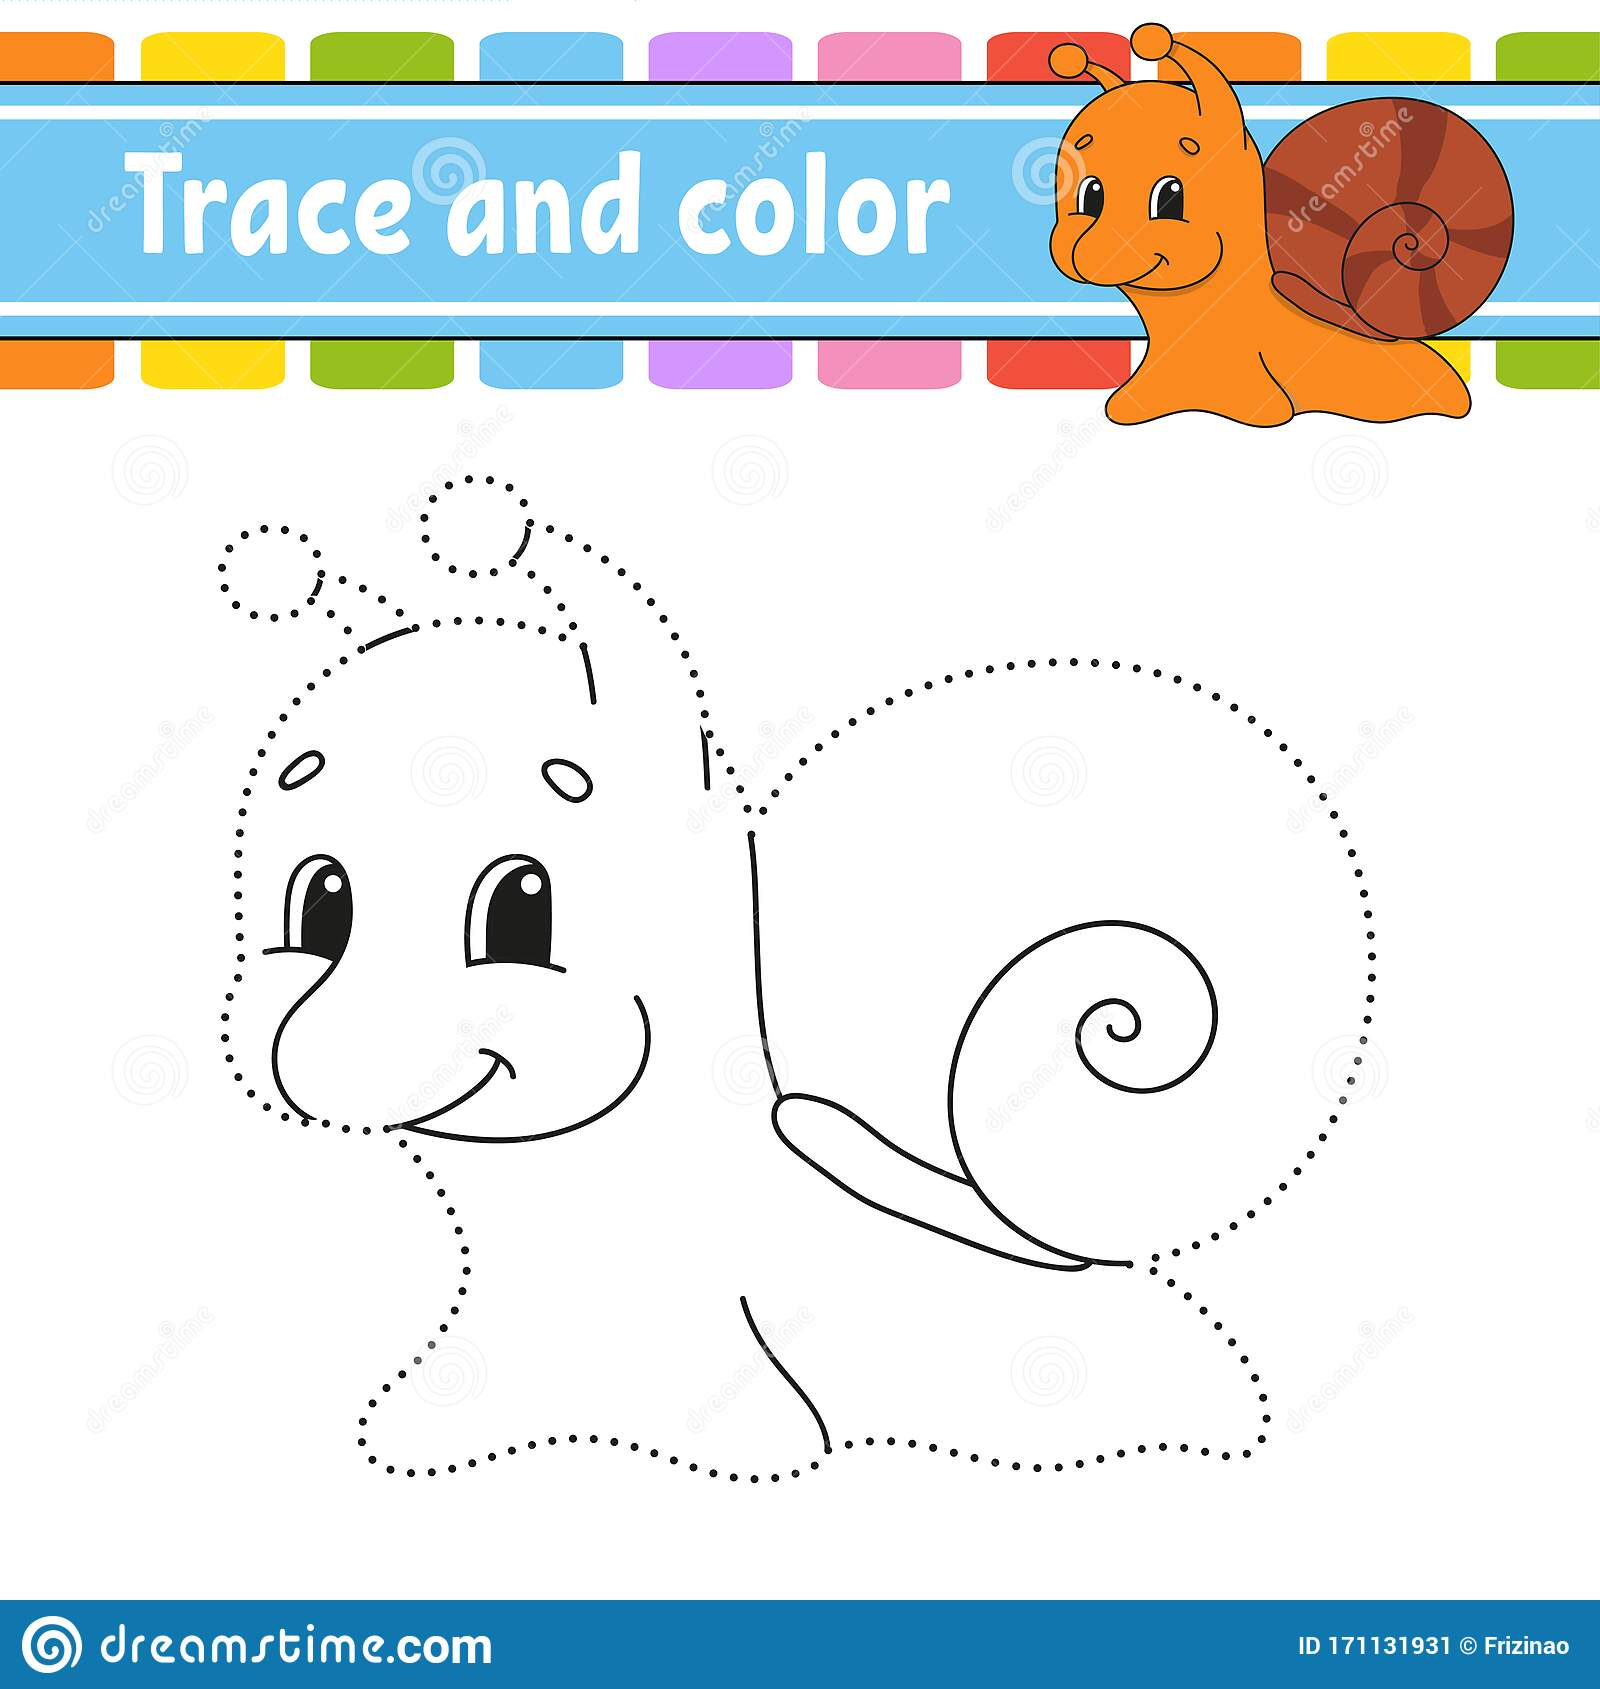 Trace And Color Snail Mollusk Coloring Page For Kids